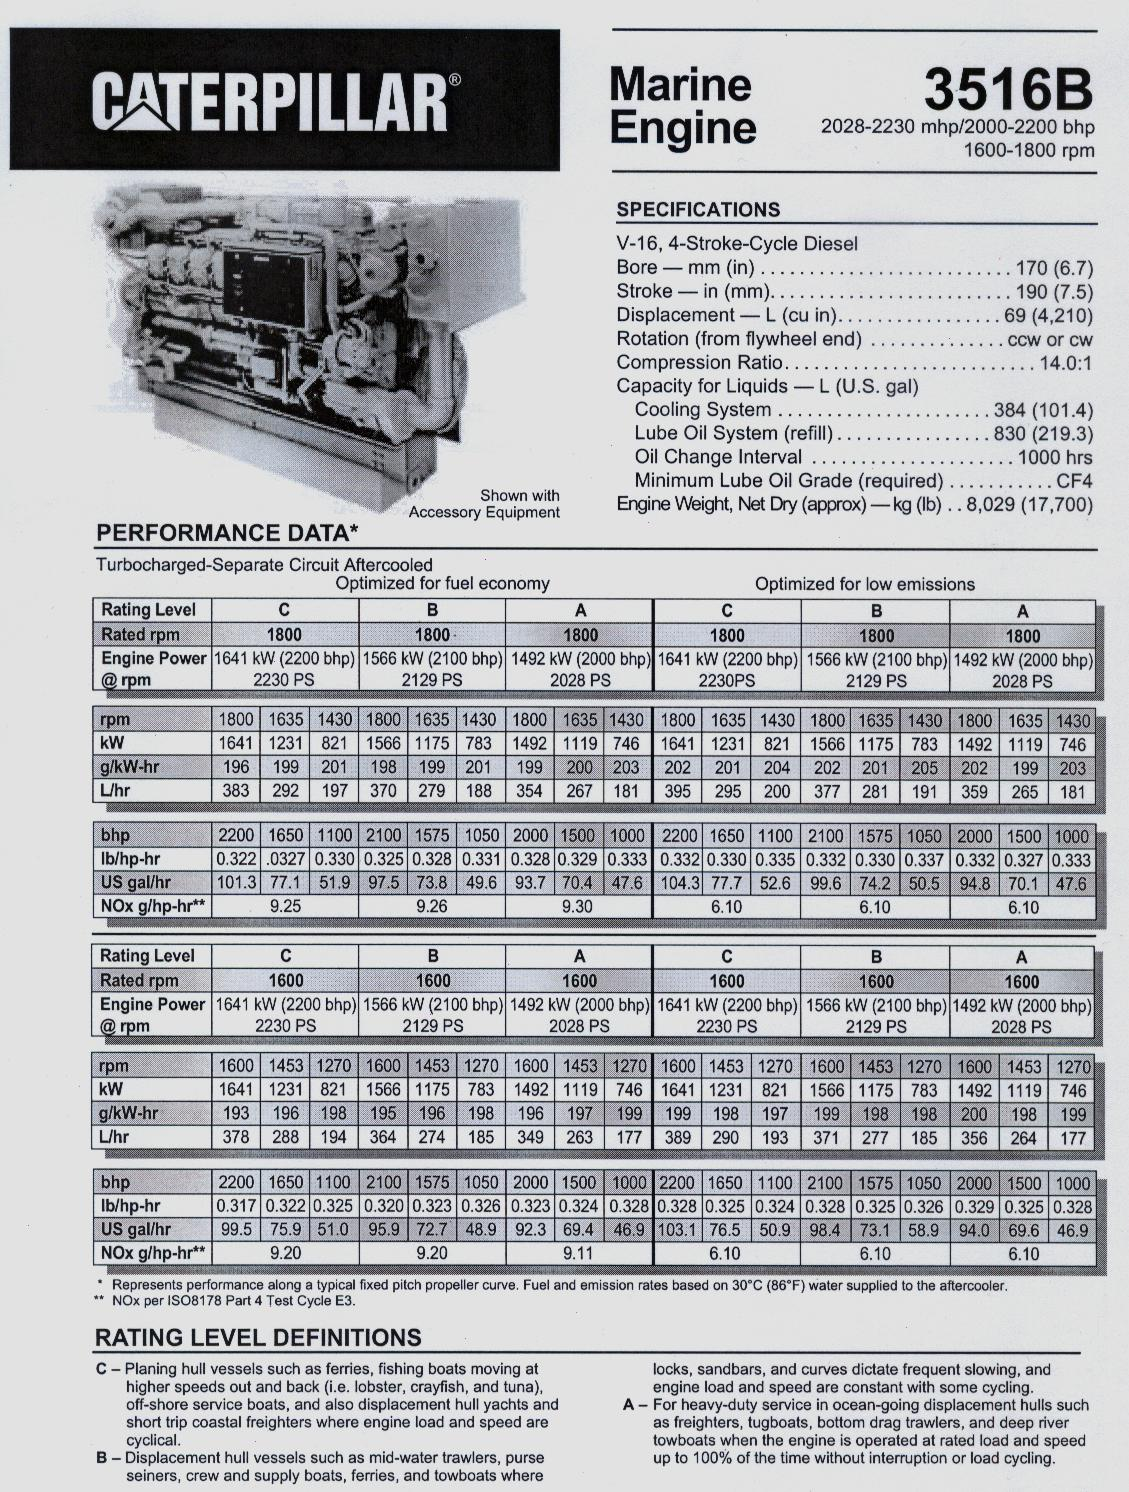 cat 3126 ecm wiring diagram with C 15 Caterpillar Engine Specifications on 2wcqd Bluebird Bus Cat Engine Model C7 Cranks Will besides 7623 Truck Wont Run likewise Wiring Diagram As Well 3126 Caterpillar Additionally additionally Cat C15 Ecm Wiring Harness moreover Detroit 60 Fuel Injector Harness.